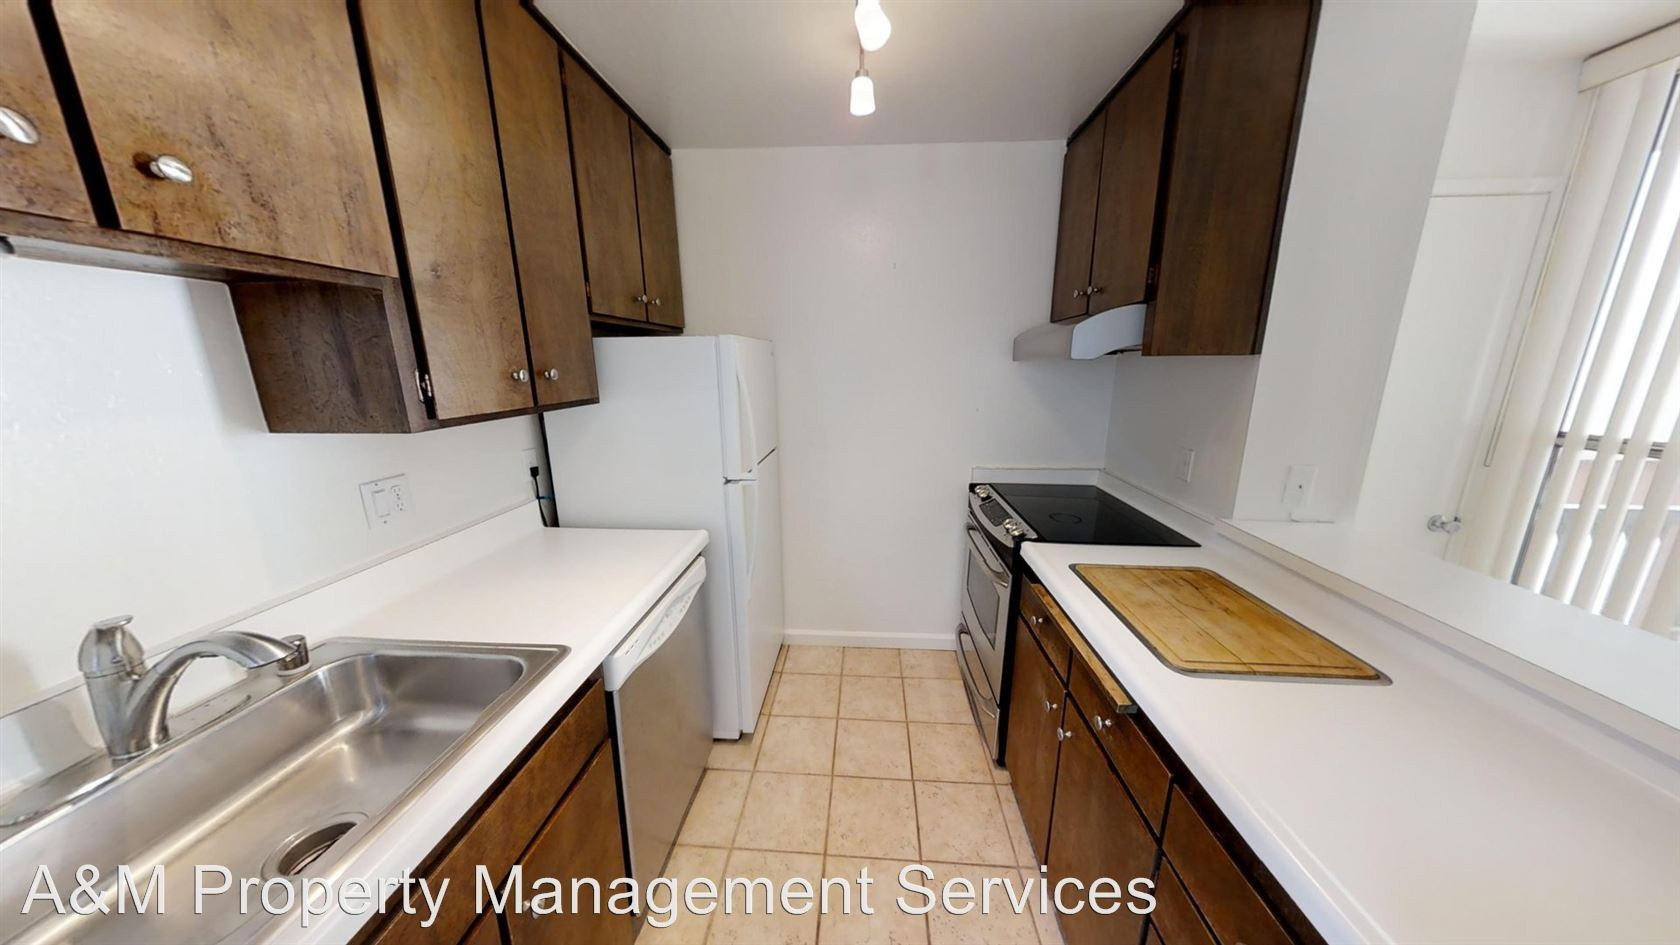 This 1BR/1BA Apartment At 250 Whitmore St. With 730 Square Feet Is Going  For $2,195/month.